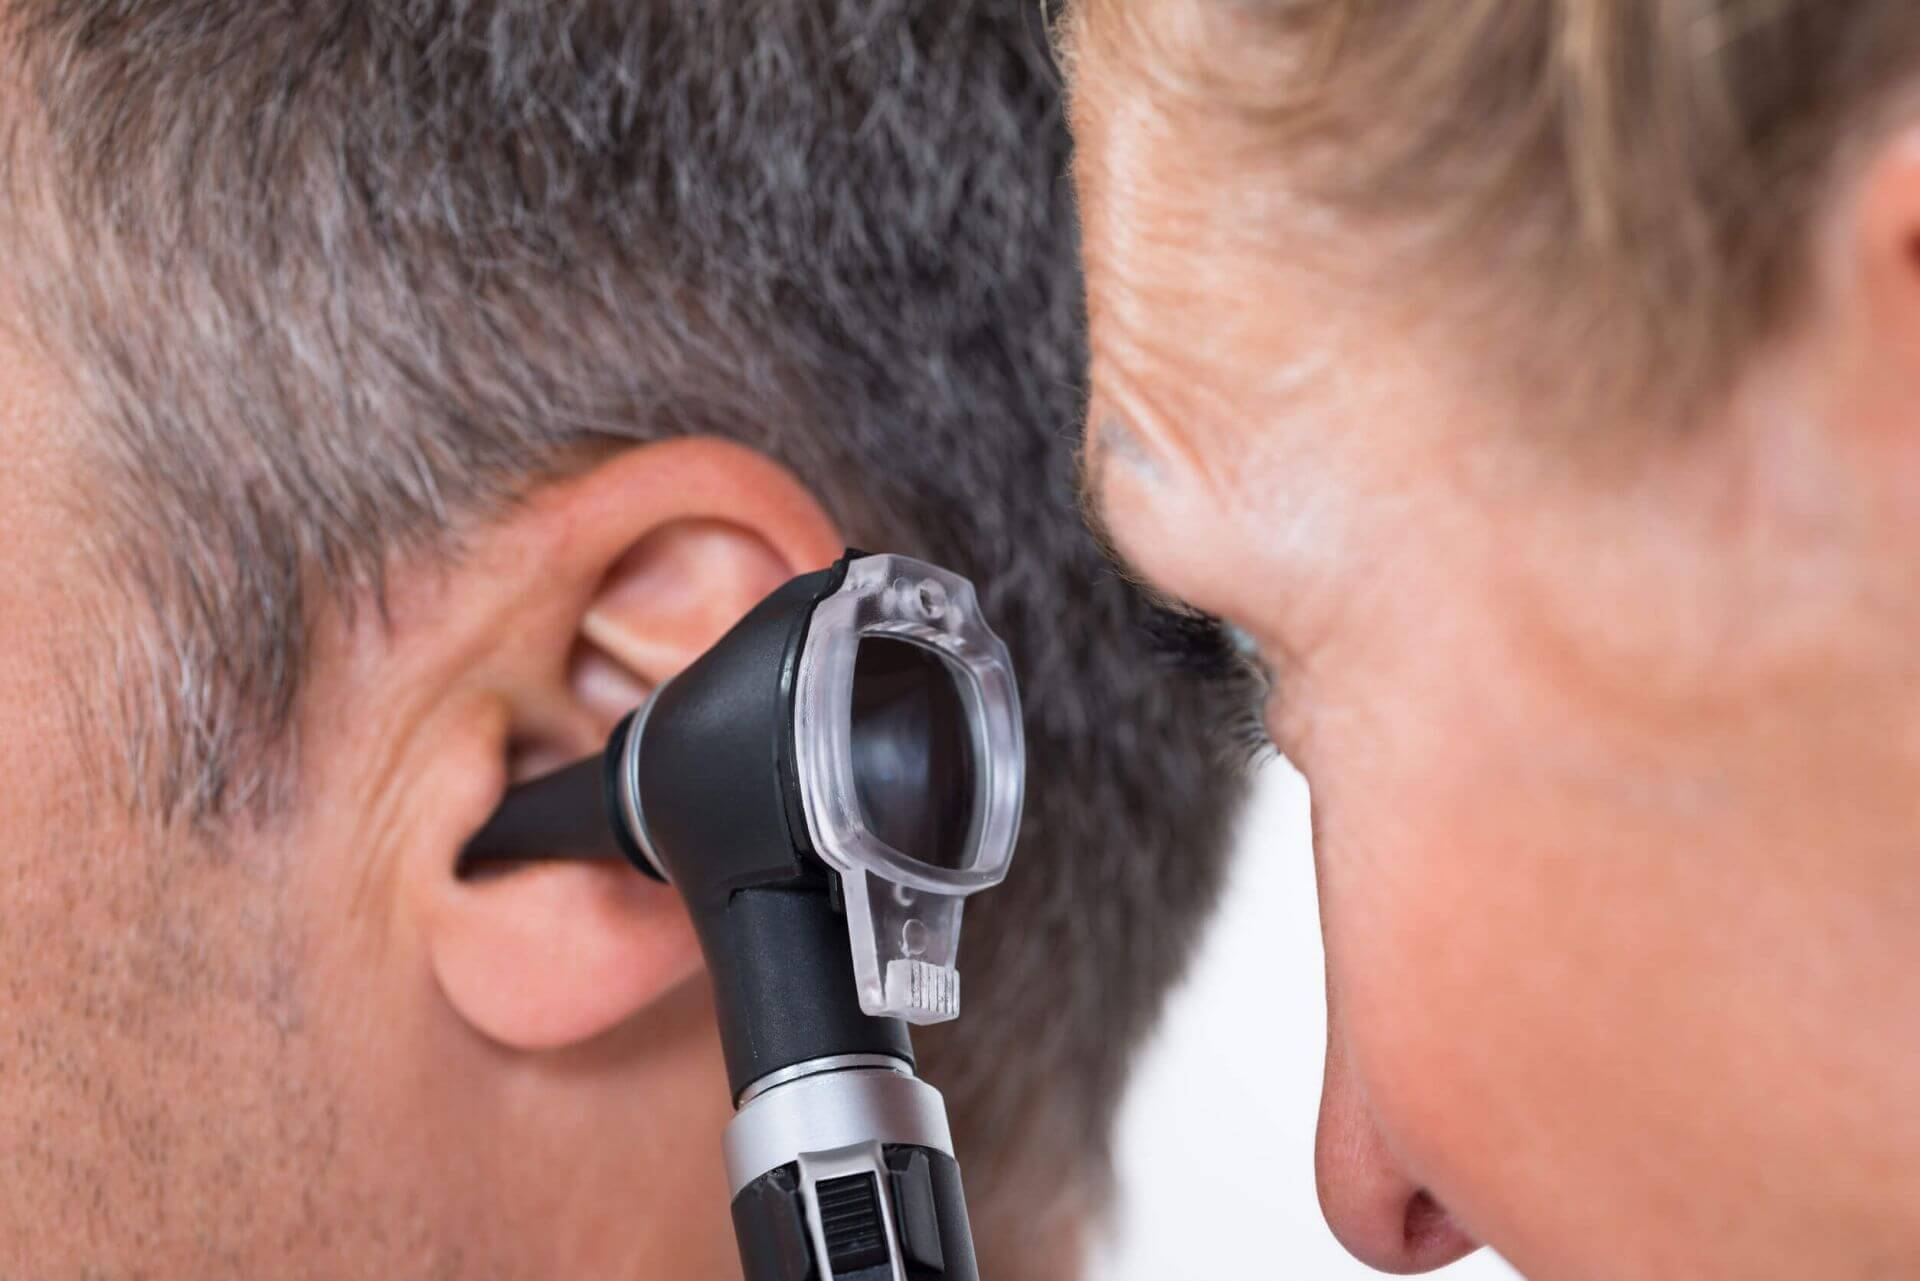 Loss of Eyesight or Hearing Loss